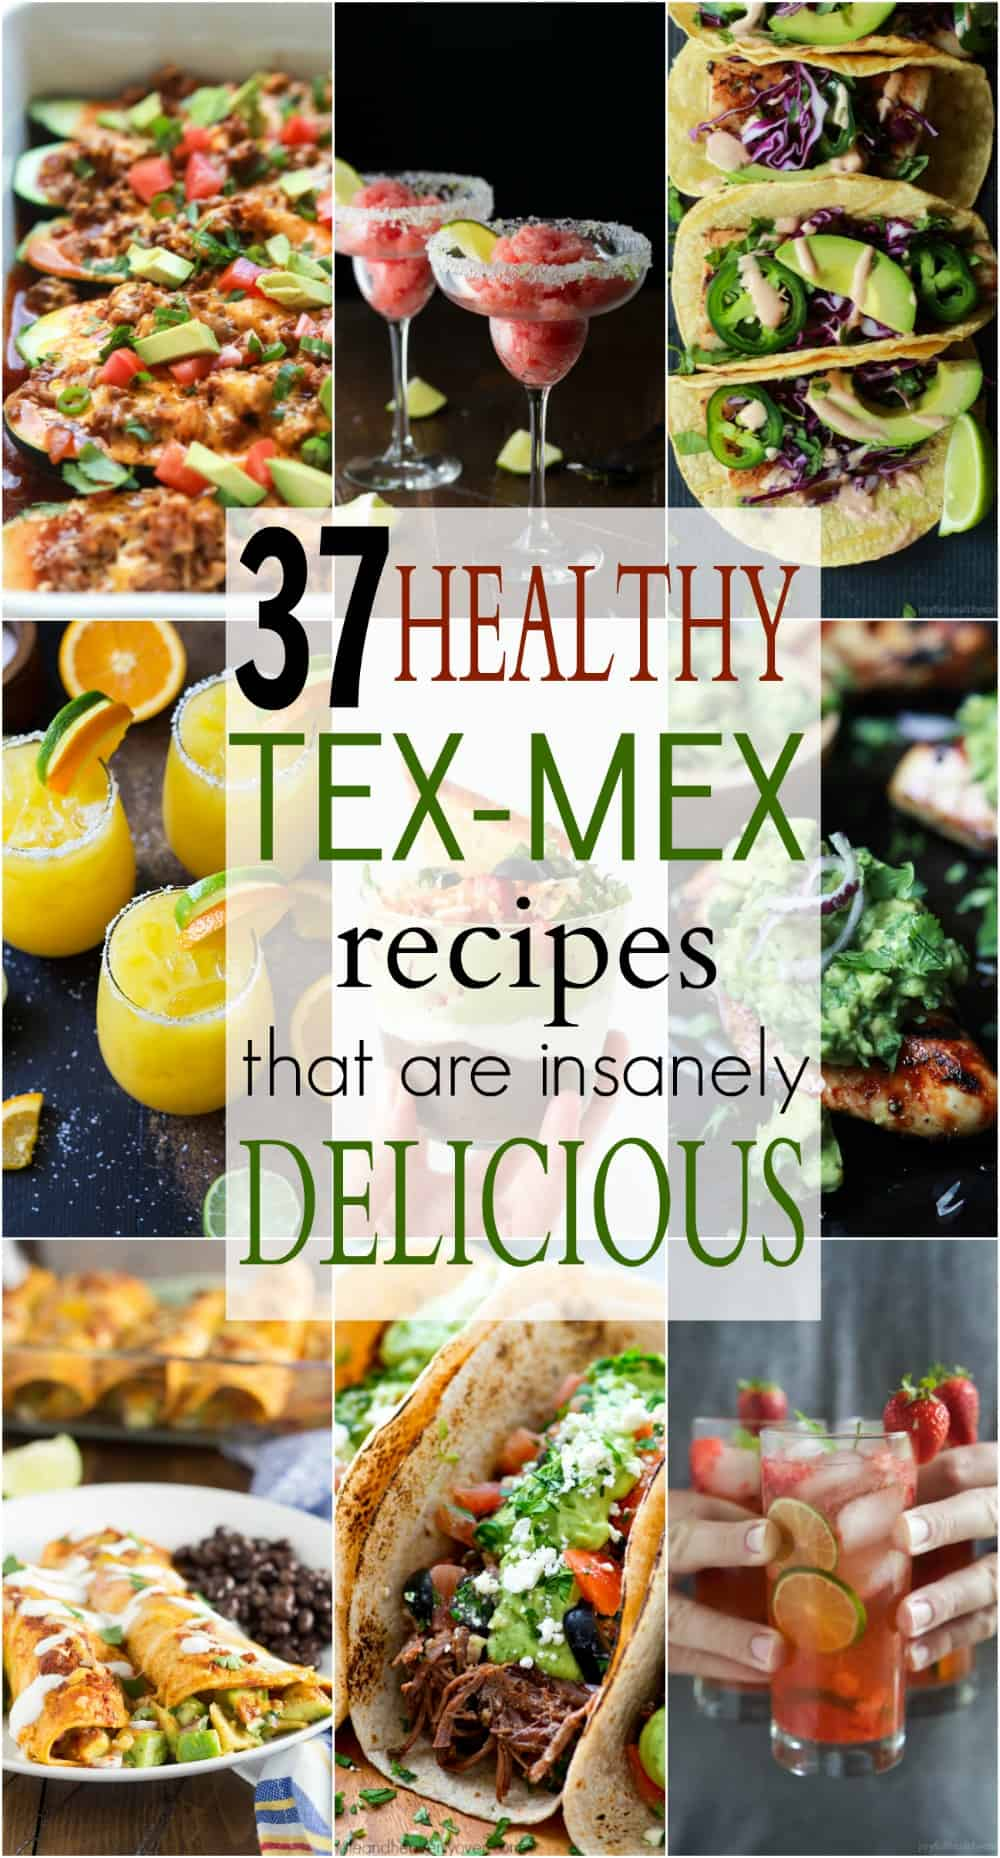 """37 Easy Healthy Tex-Mex Recipes that will ensure you have the best """"fiesta"""" on the block! These recipes will blow your mind AND your taste buds. Bring on the Mexican Food! Ole!   joyfulhealthyeats.com"""